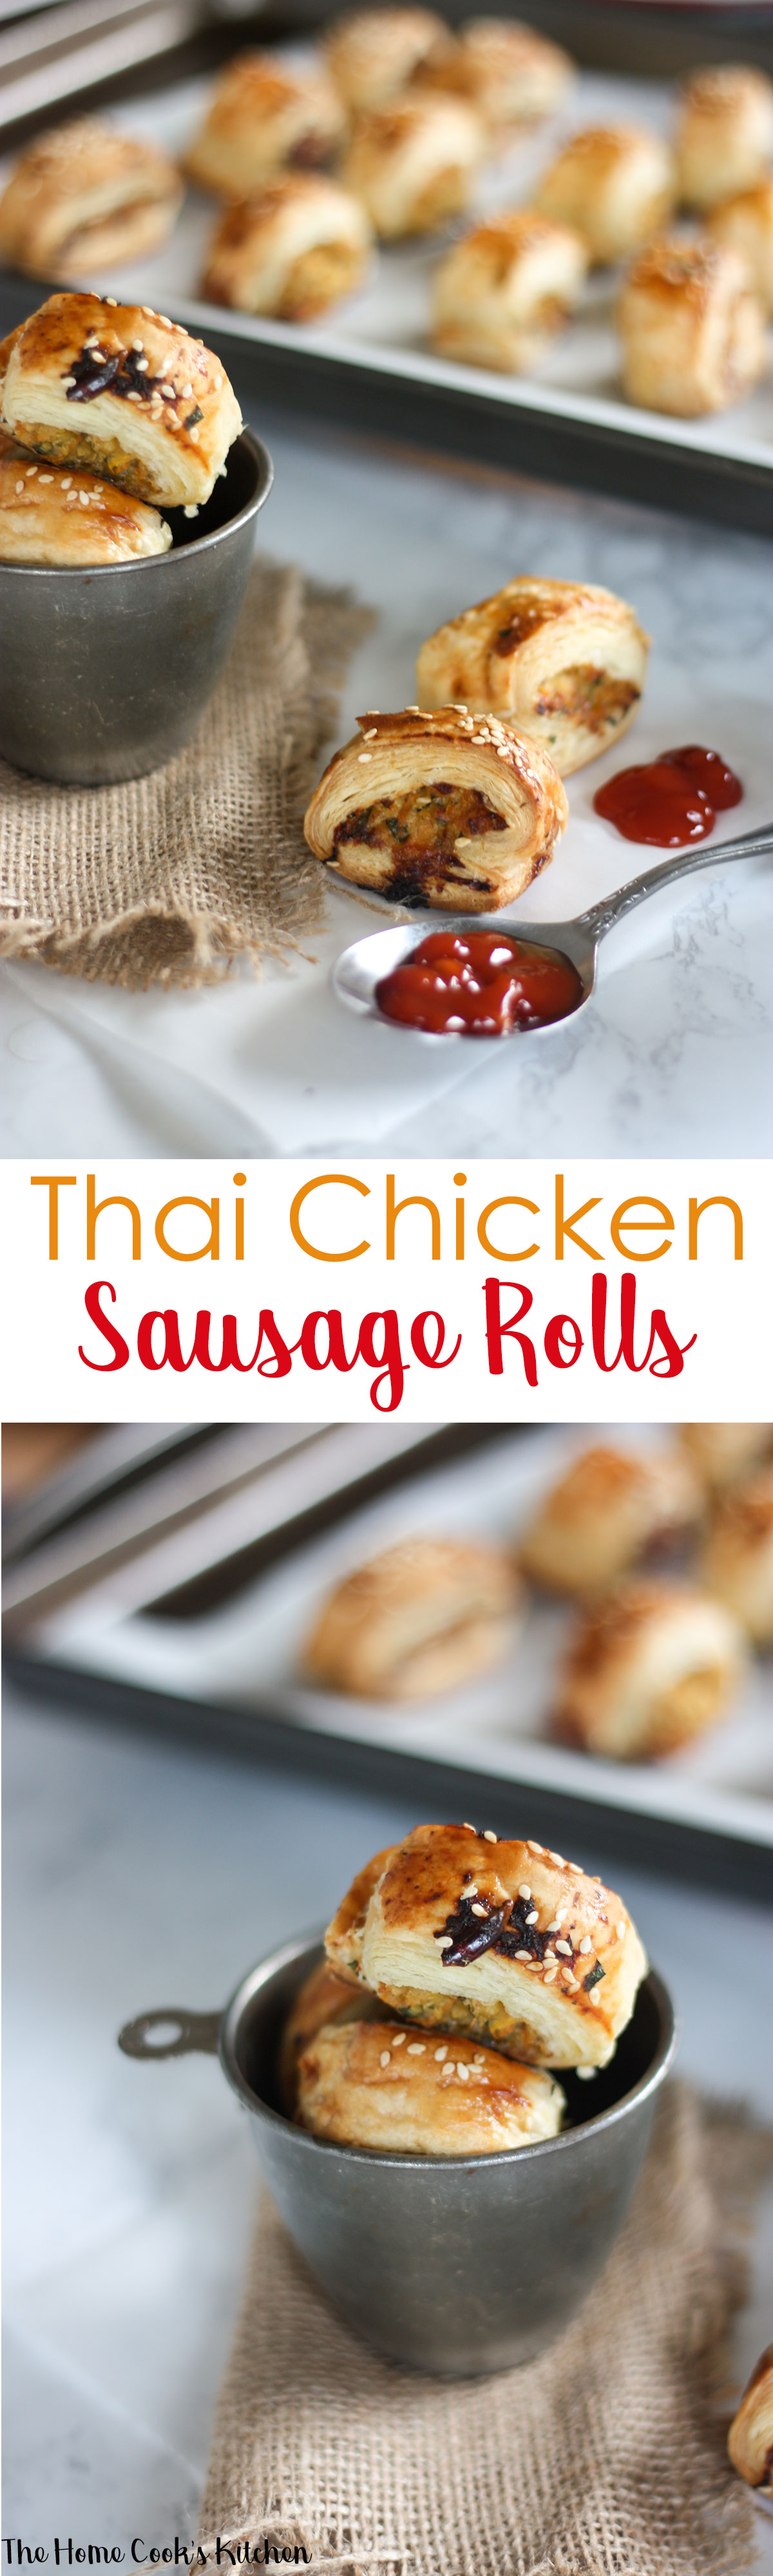 Thai Chicken Sausage Rolls www.thehomecookskitchen.com pin for #gameday